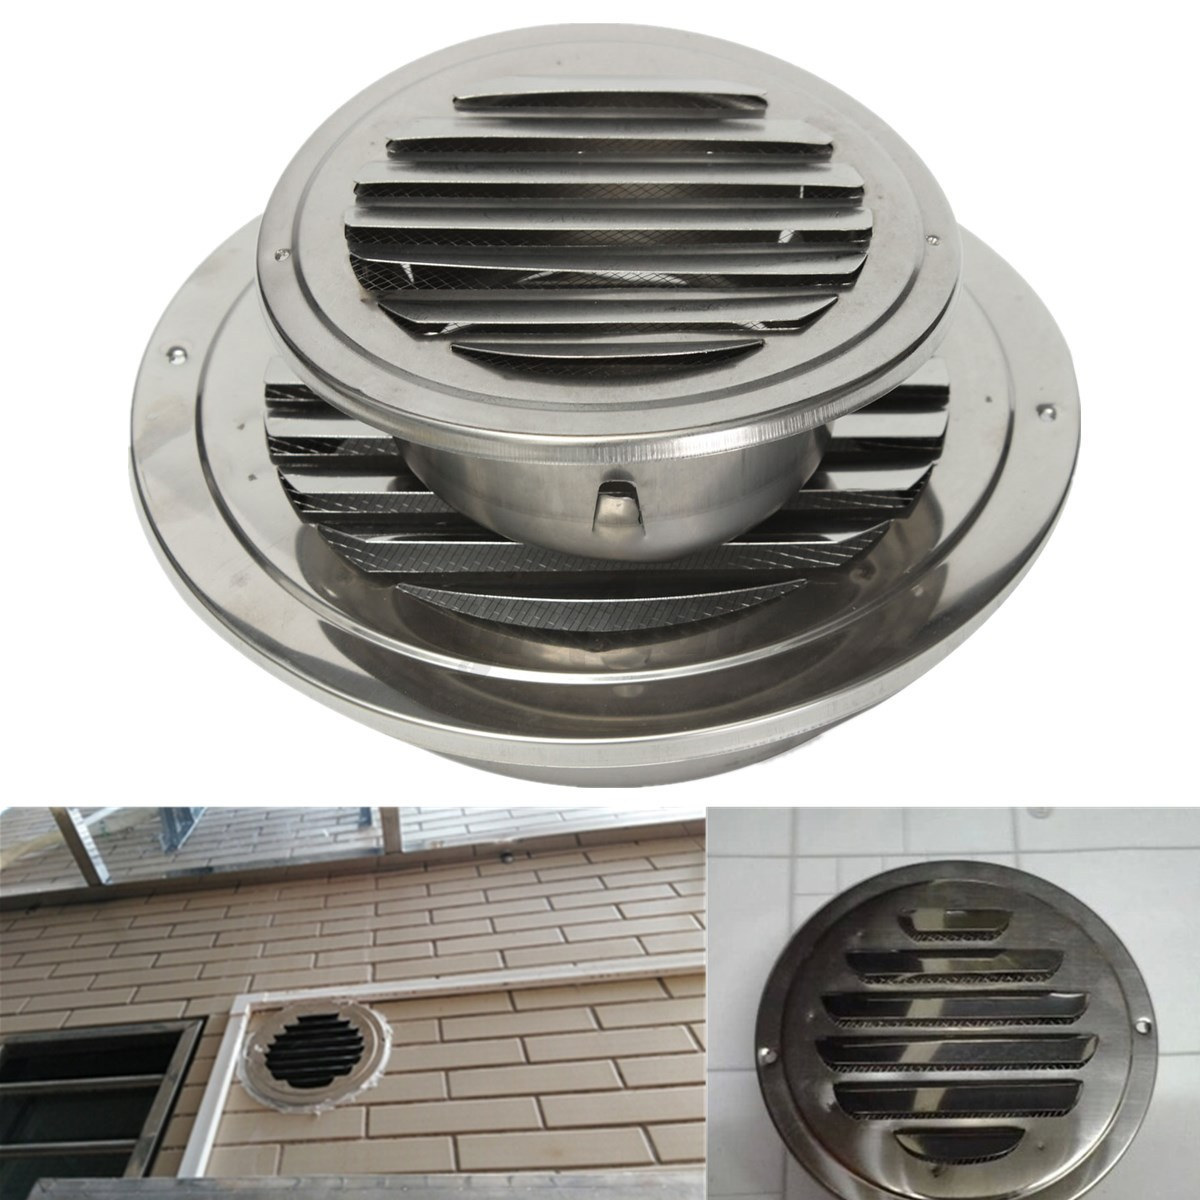 Stainless Silver Circular Air Vent Scoop Grille Cover Wall Ventilation Grilles : eBay